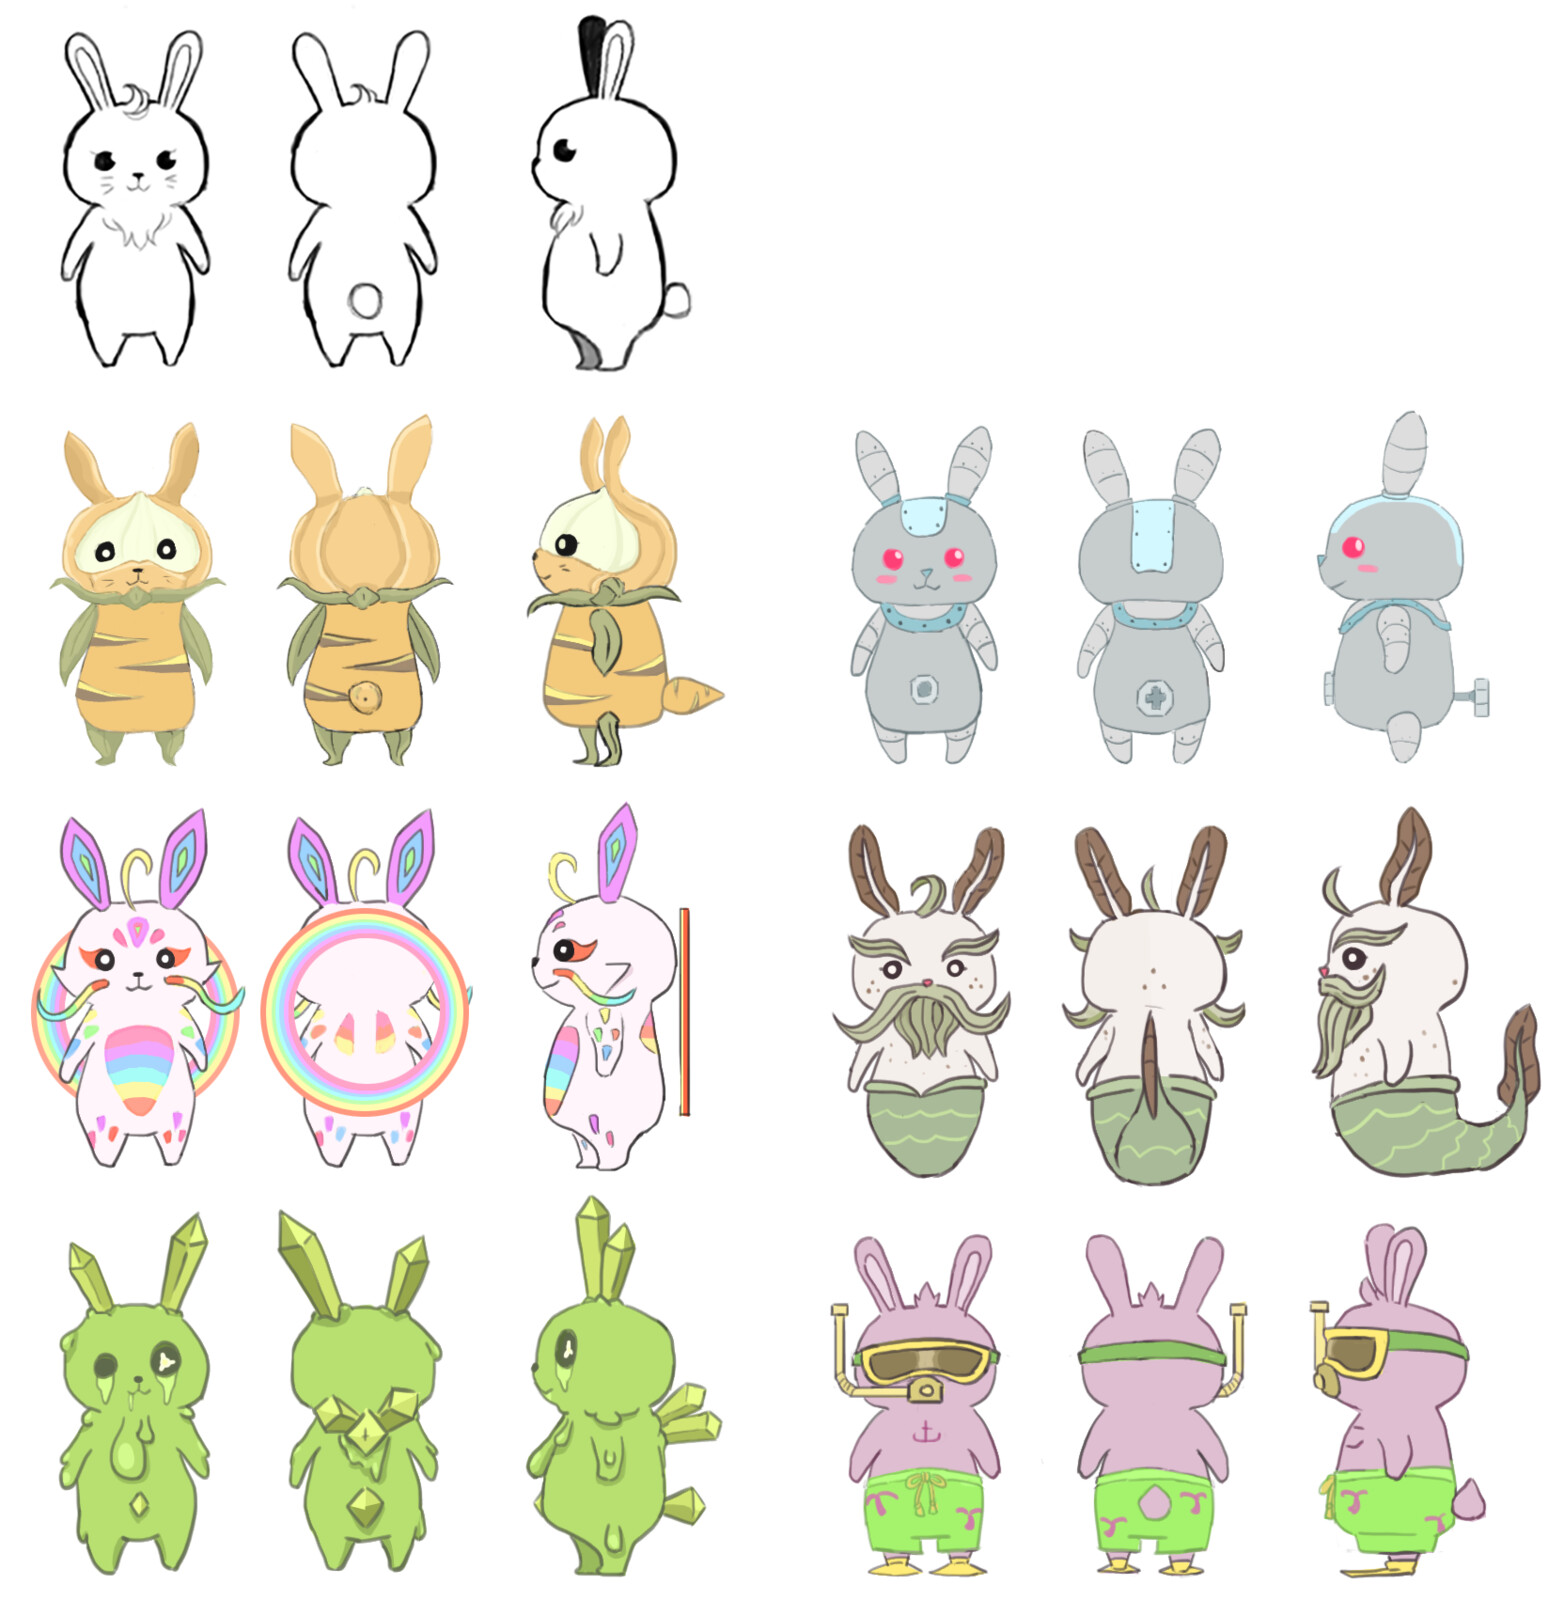 Collectible Bunnies concept.